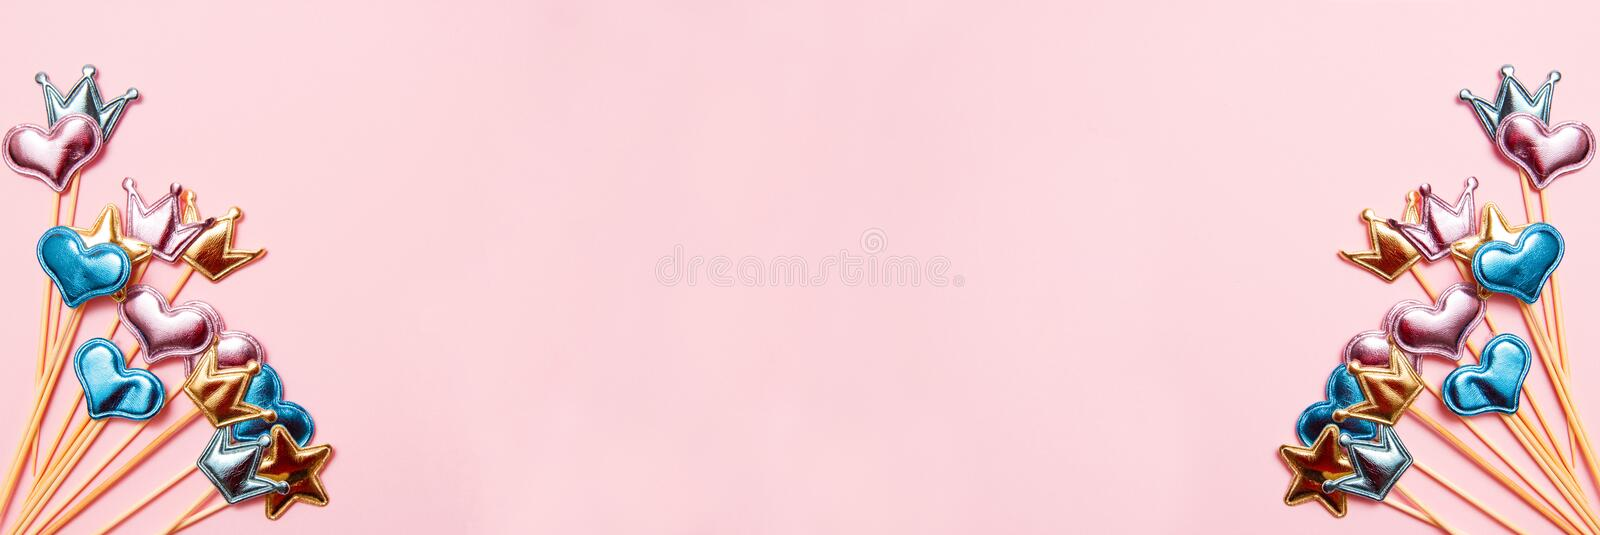 Collection of party objects on pink background. Birthday concept. Top view, banner stock photography